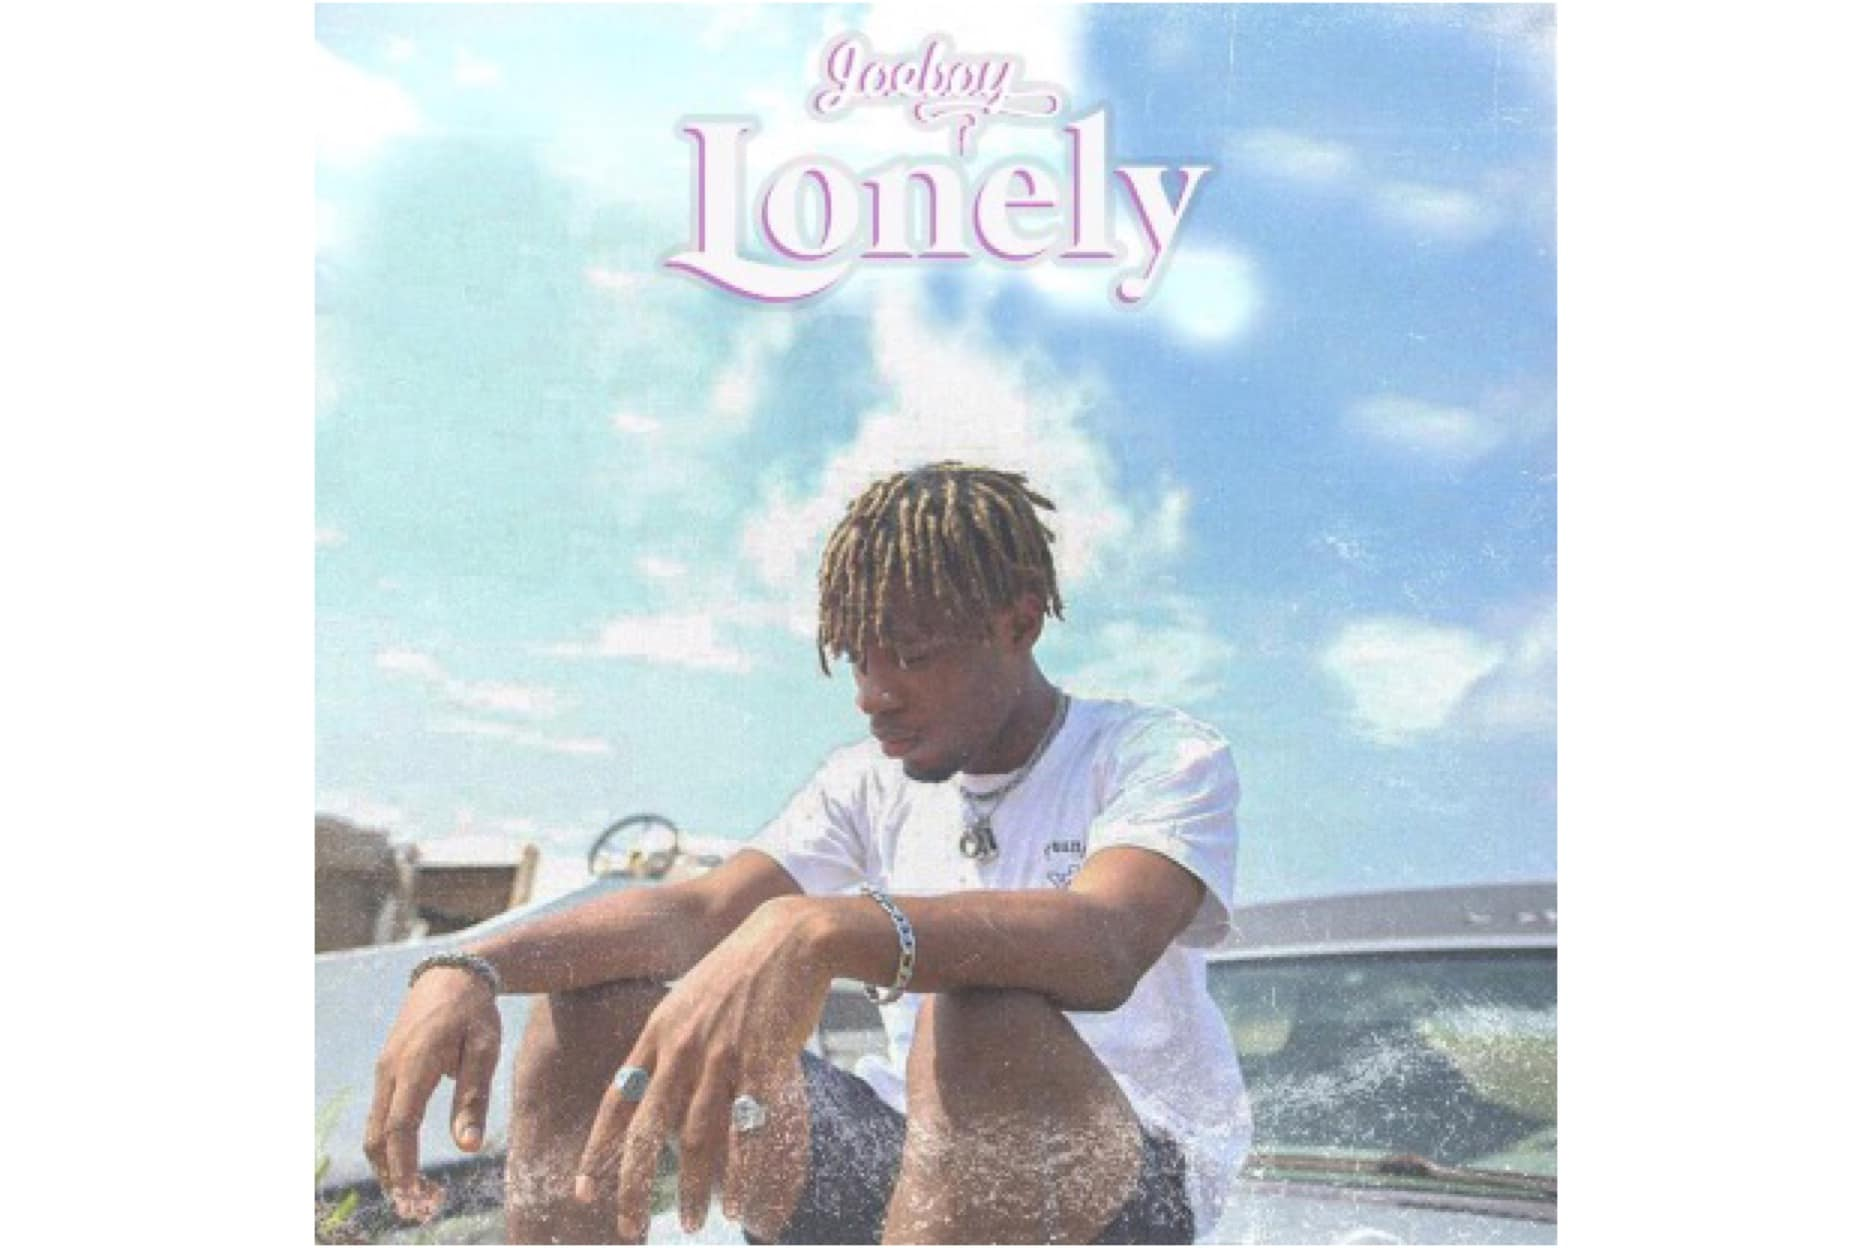 download mp3 Joeboy Lonely mp3 download